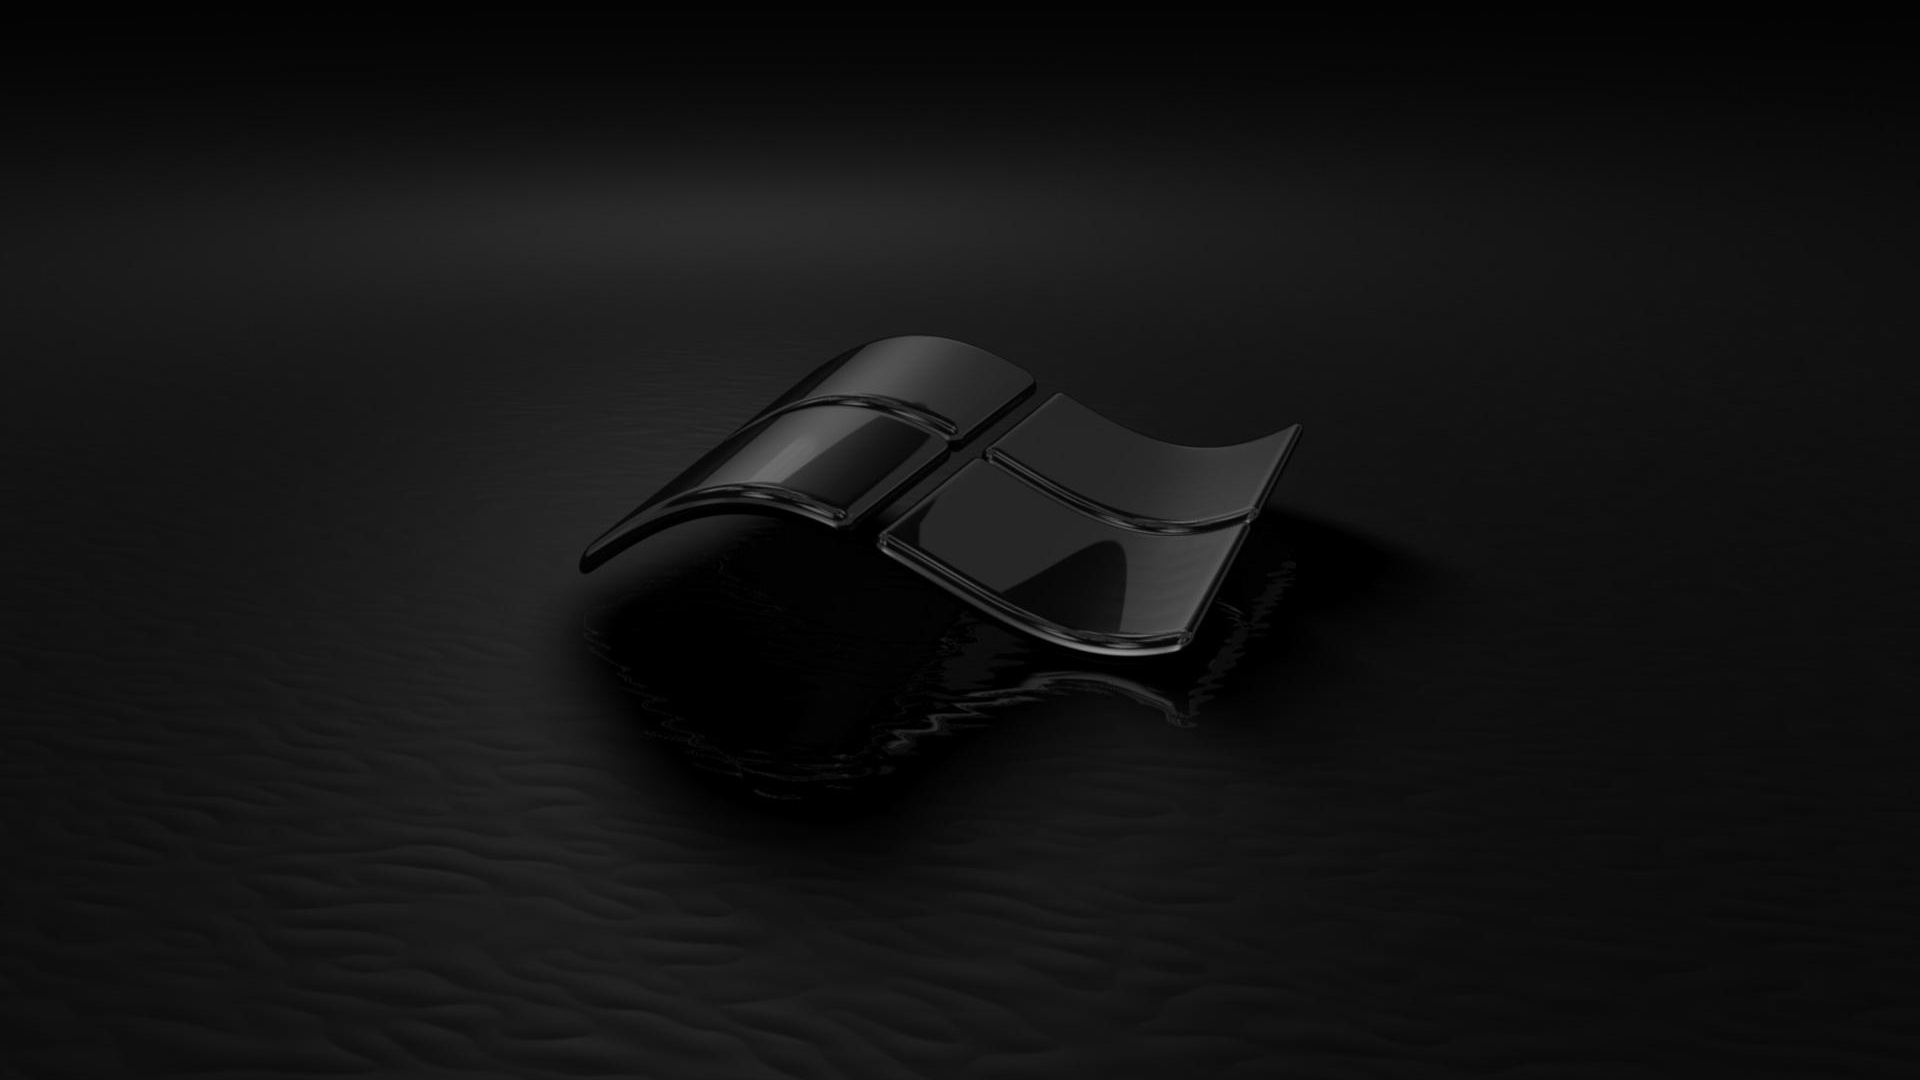 Download Wallpaper 1920x1080 Windows 7, Black, Glass, Reflection